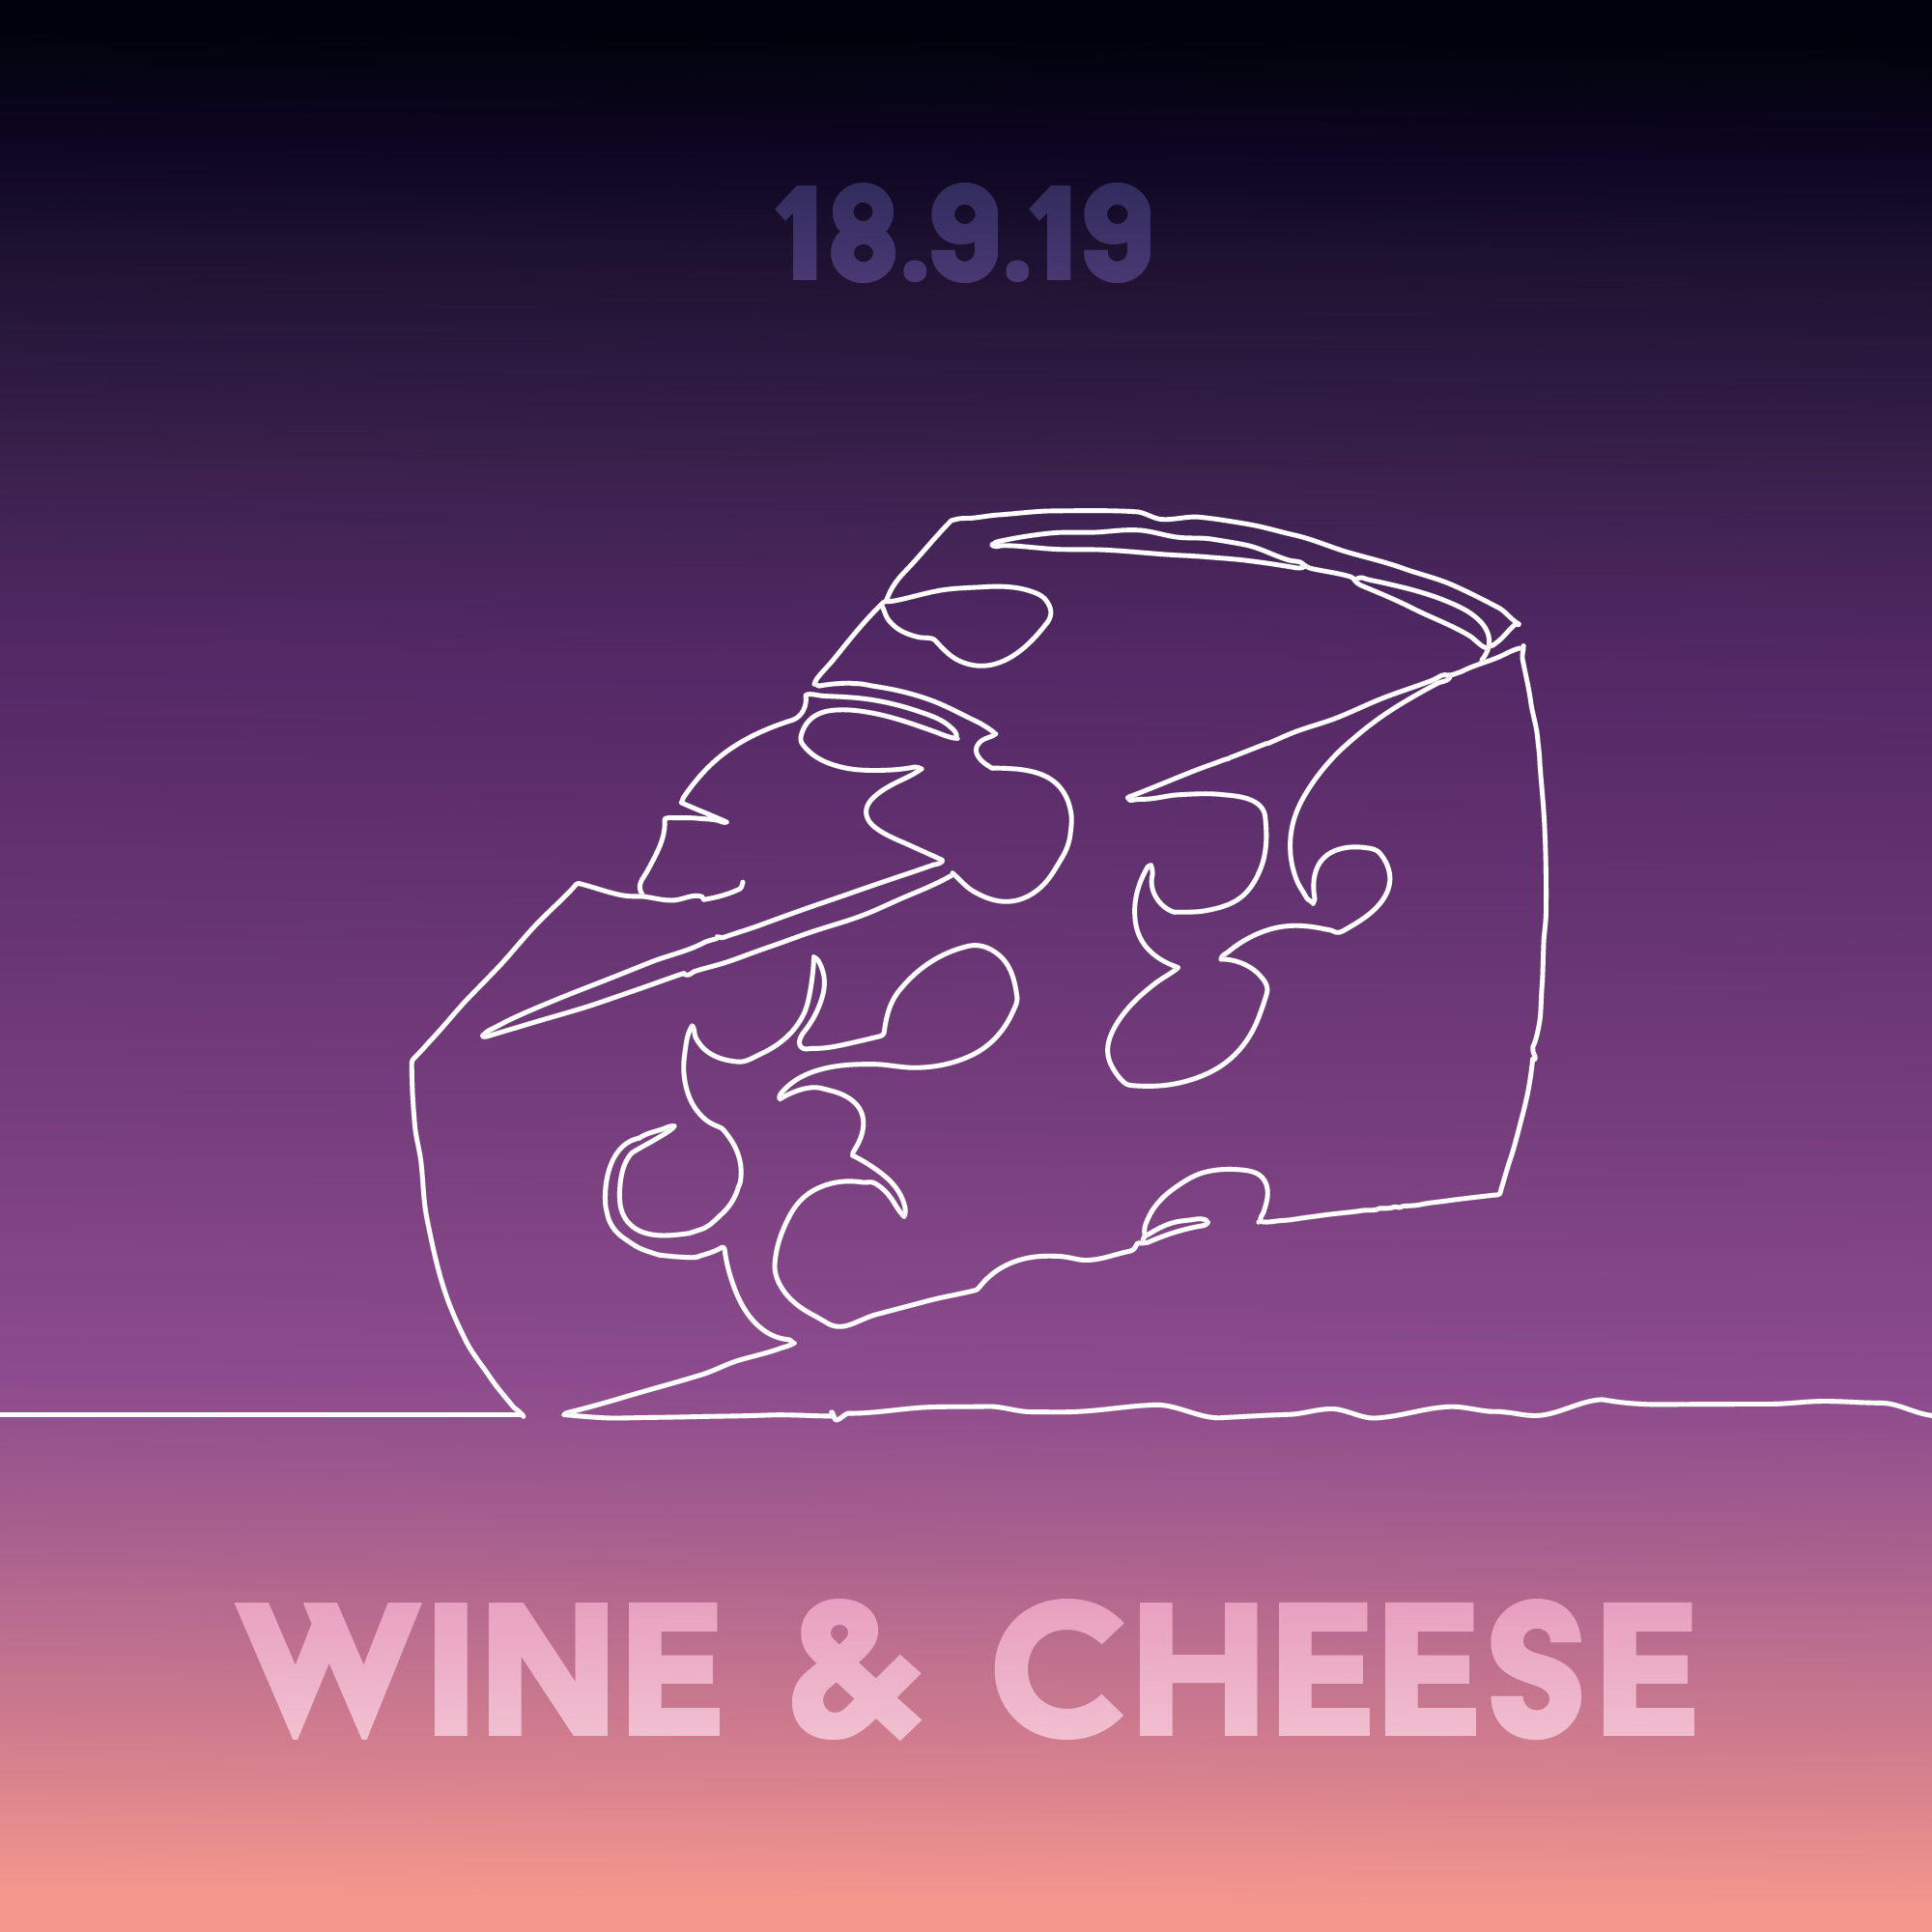 Wine & Cheese - Self explanatory…cheese selection from Madame Fromage, wine, live jazz band and hummus society! Sit down and unWINEd. Wednesday 18 September 8pmLocation RWSUEntry Doors £4 (Free with 2019 wristband)